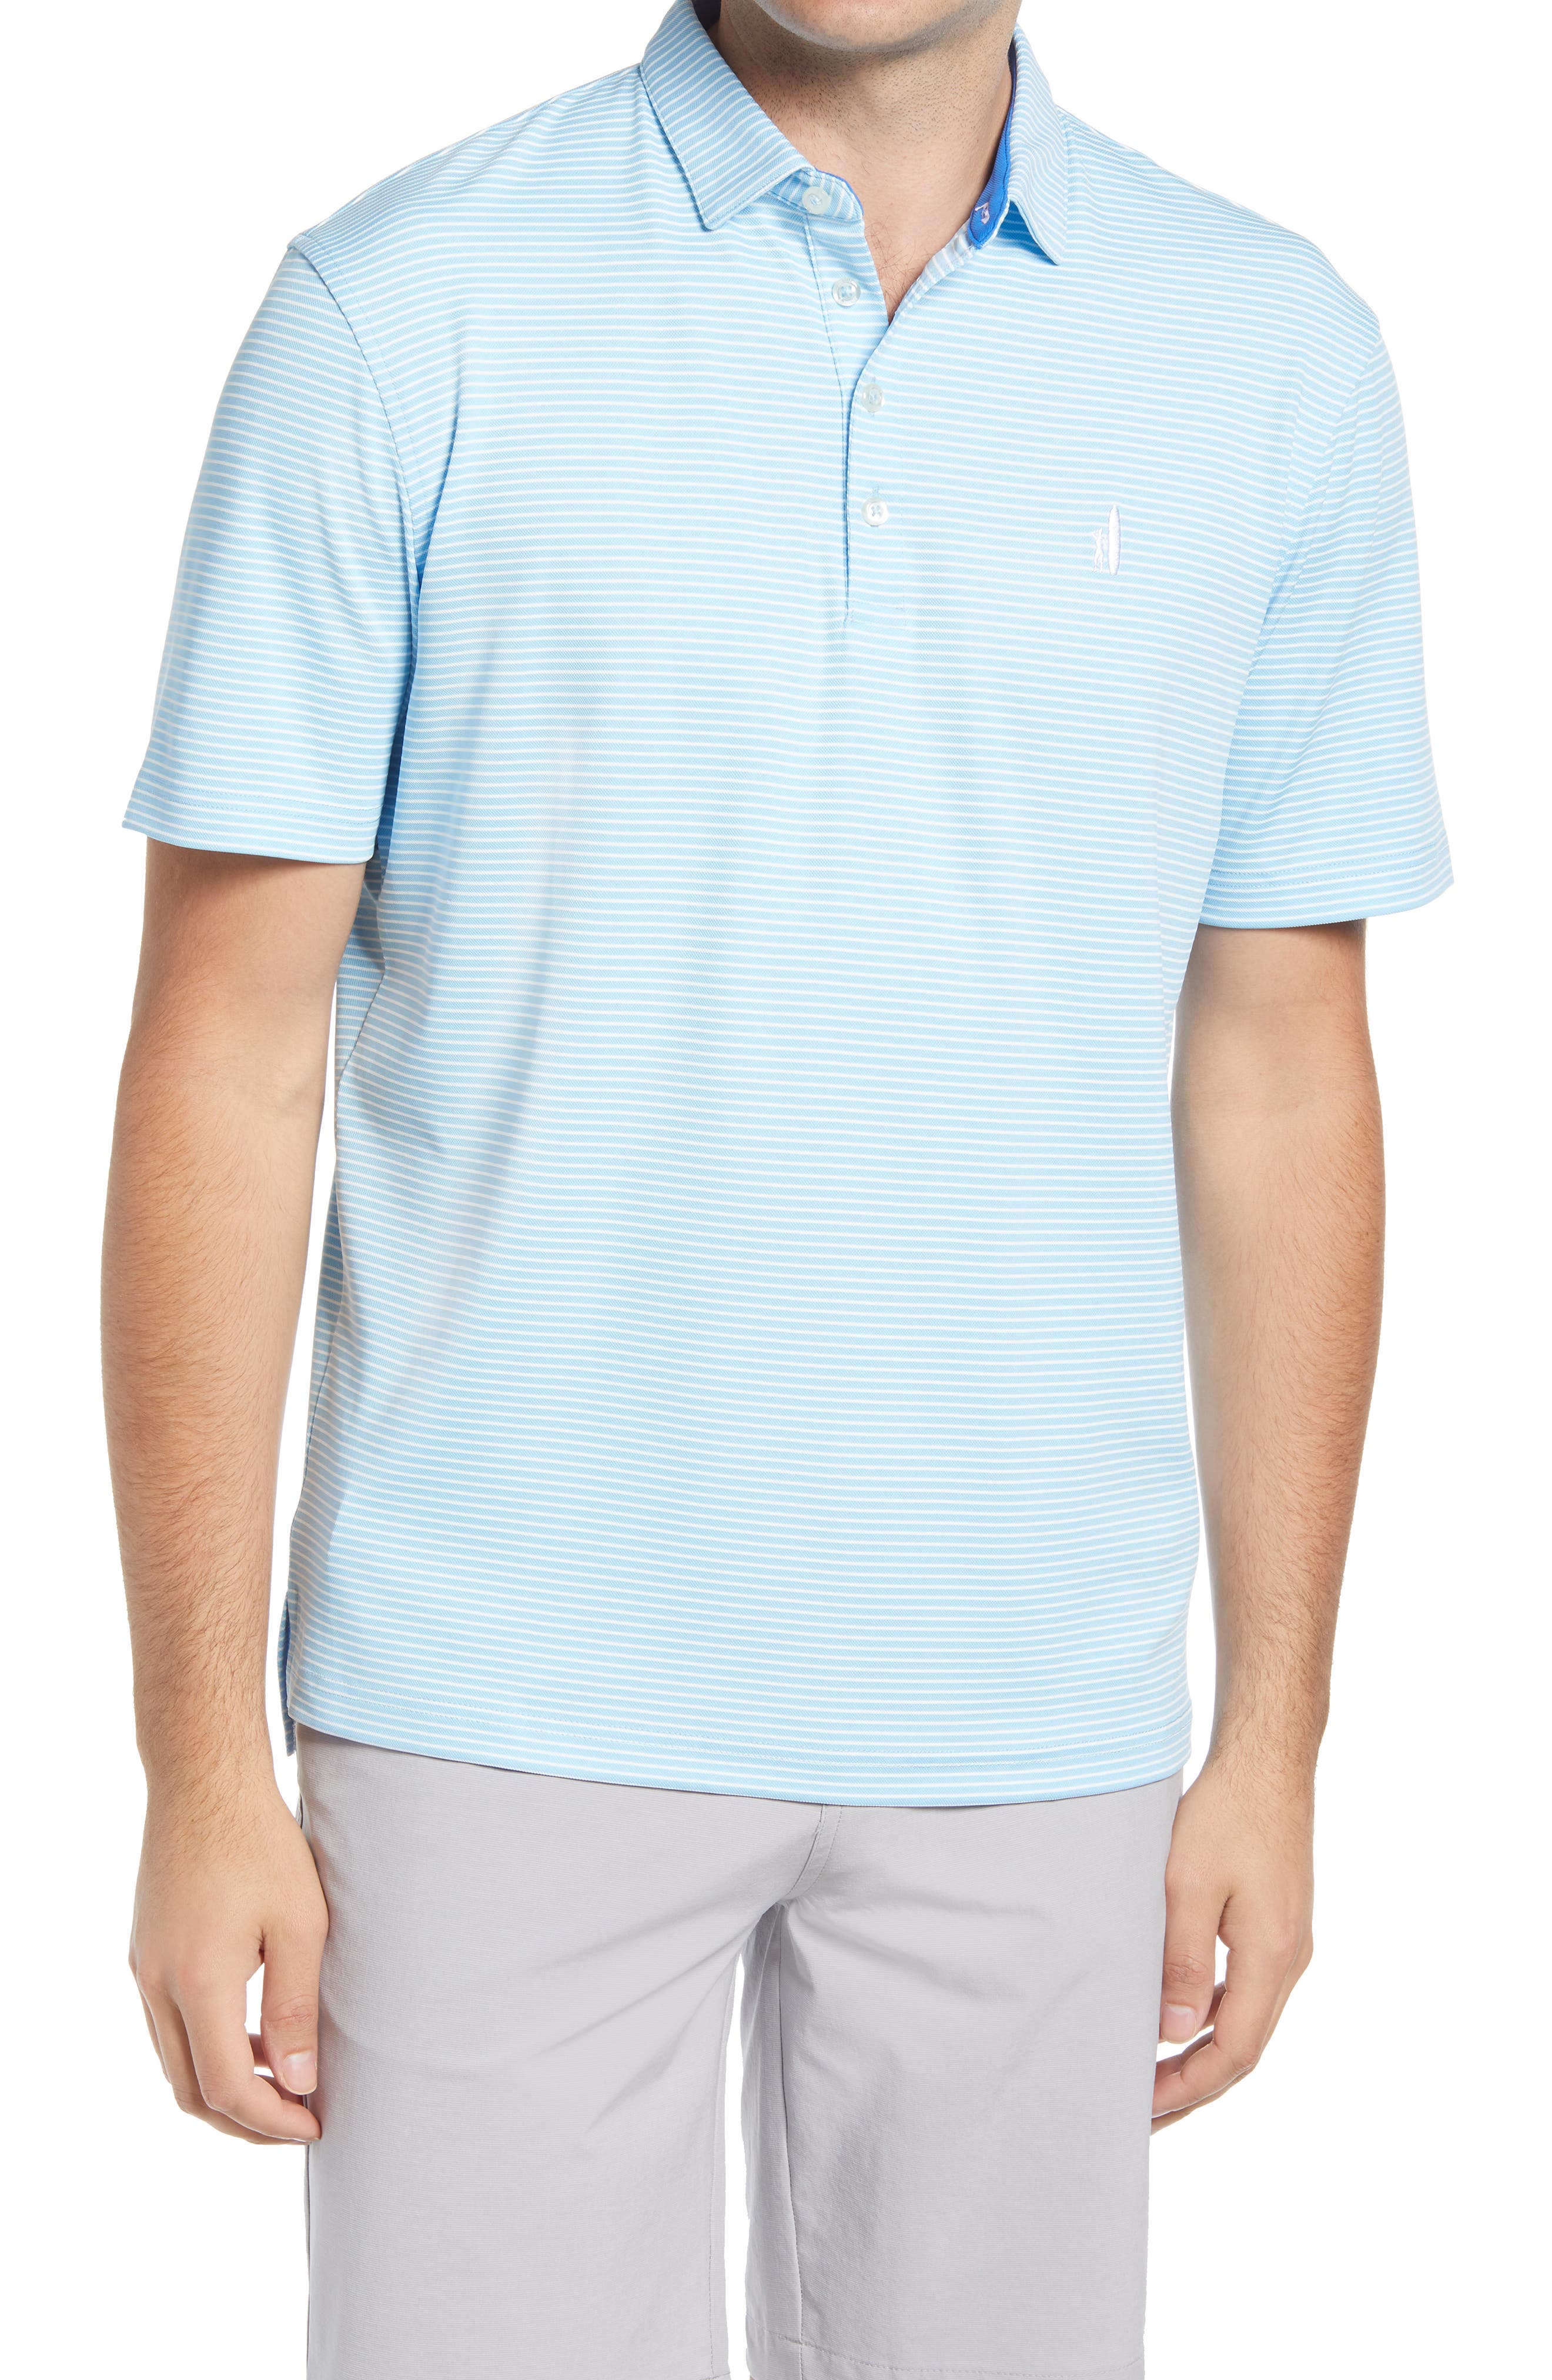 Merrins Hangin' Out Stripe Performance Polo